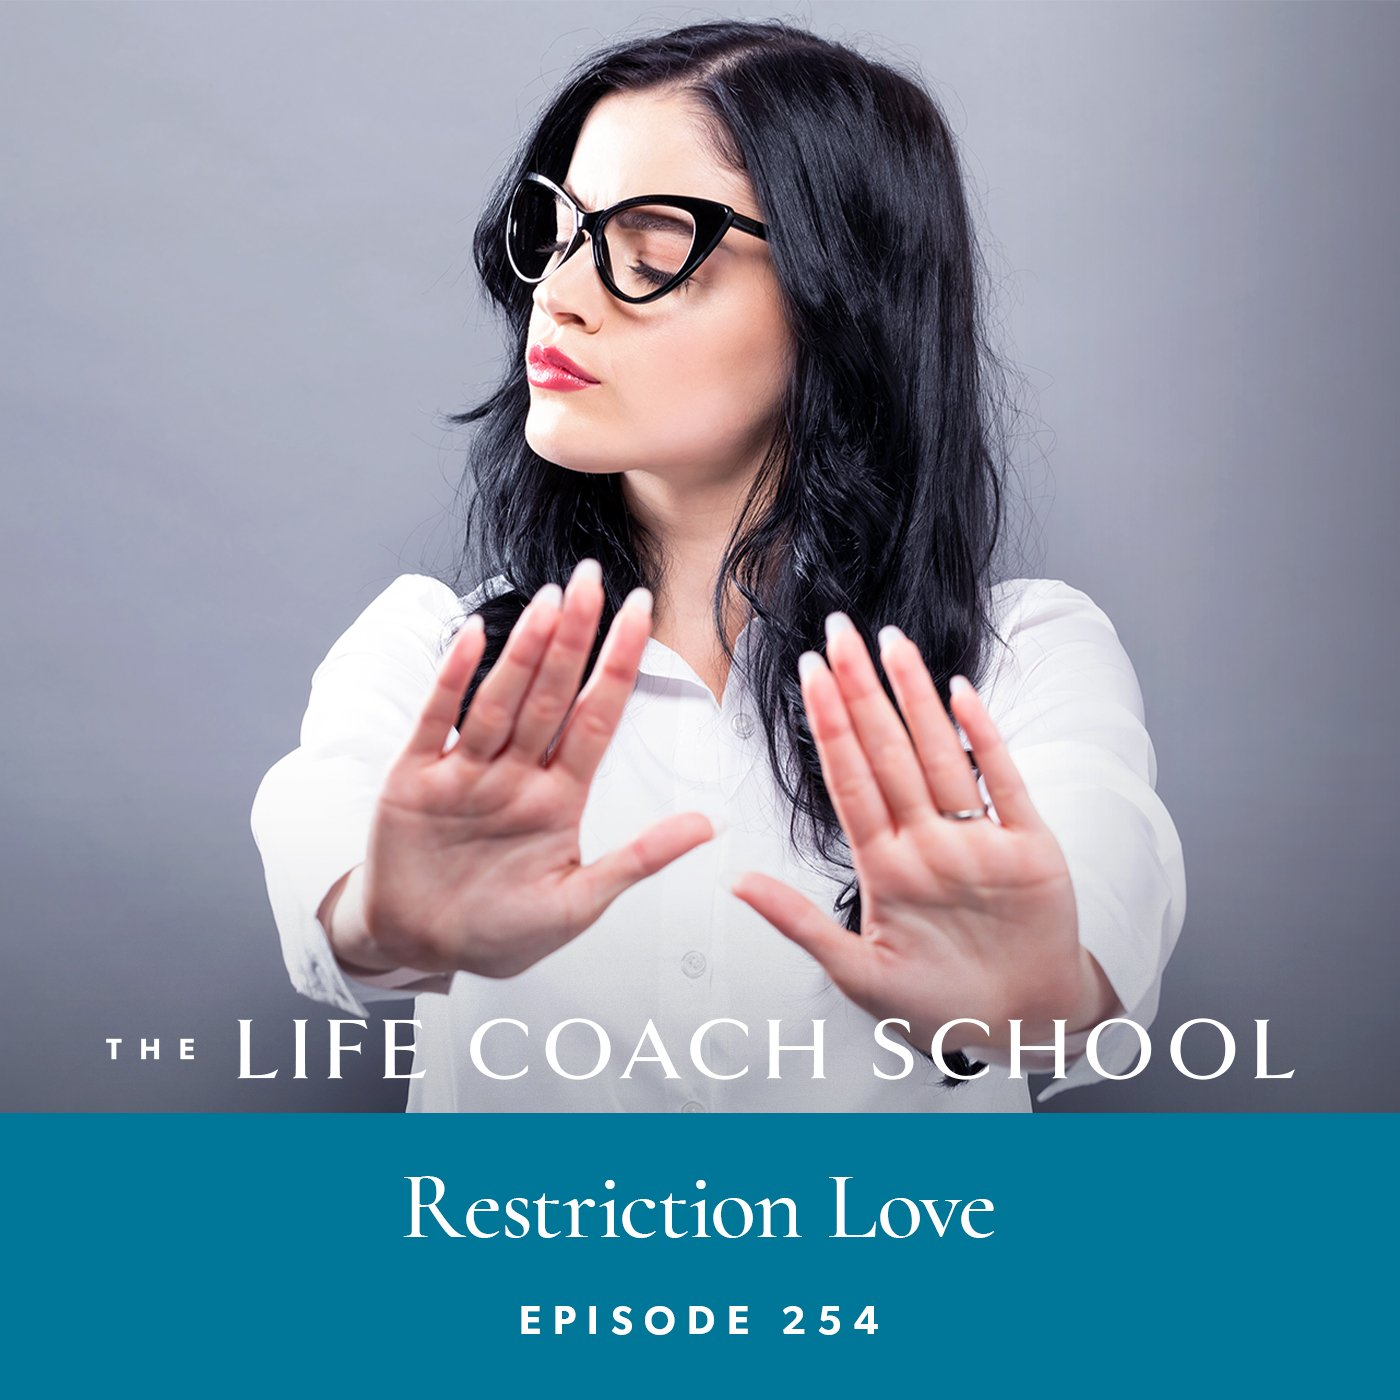 The Life Coach School Podcast with Brooke Castillo | Episode 254 | Restriction Love